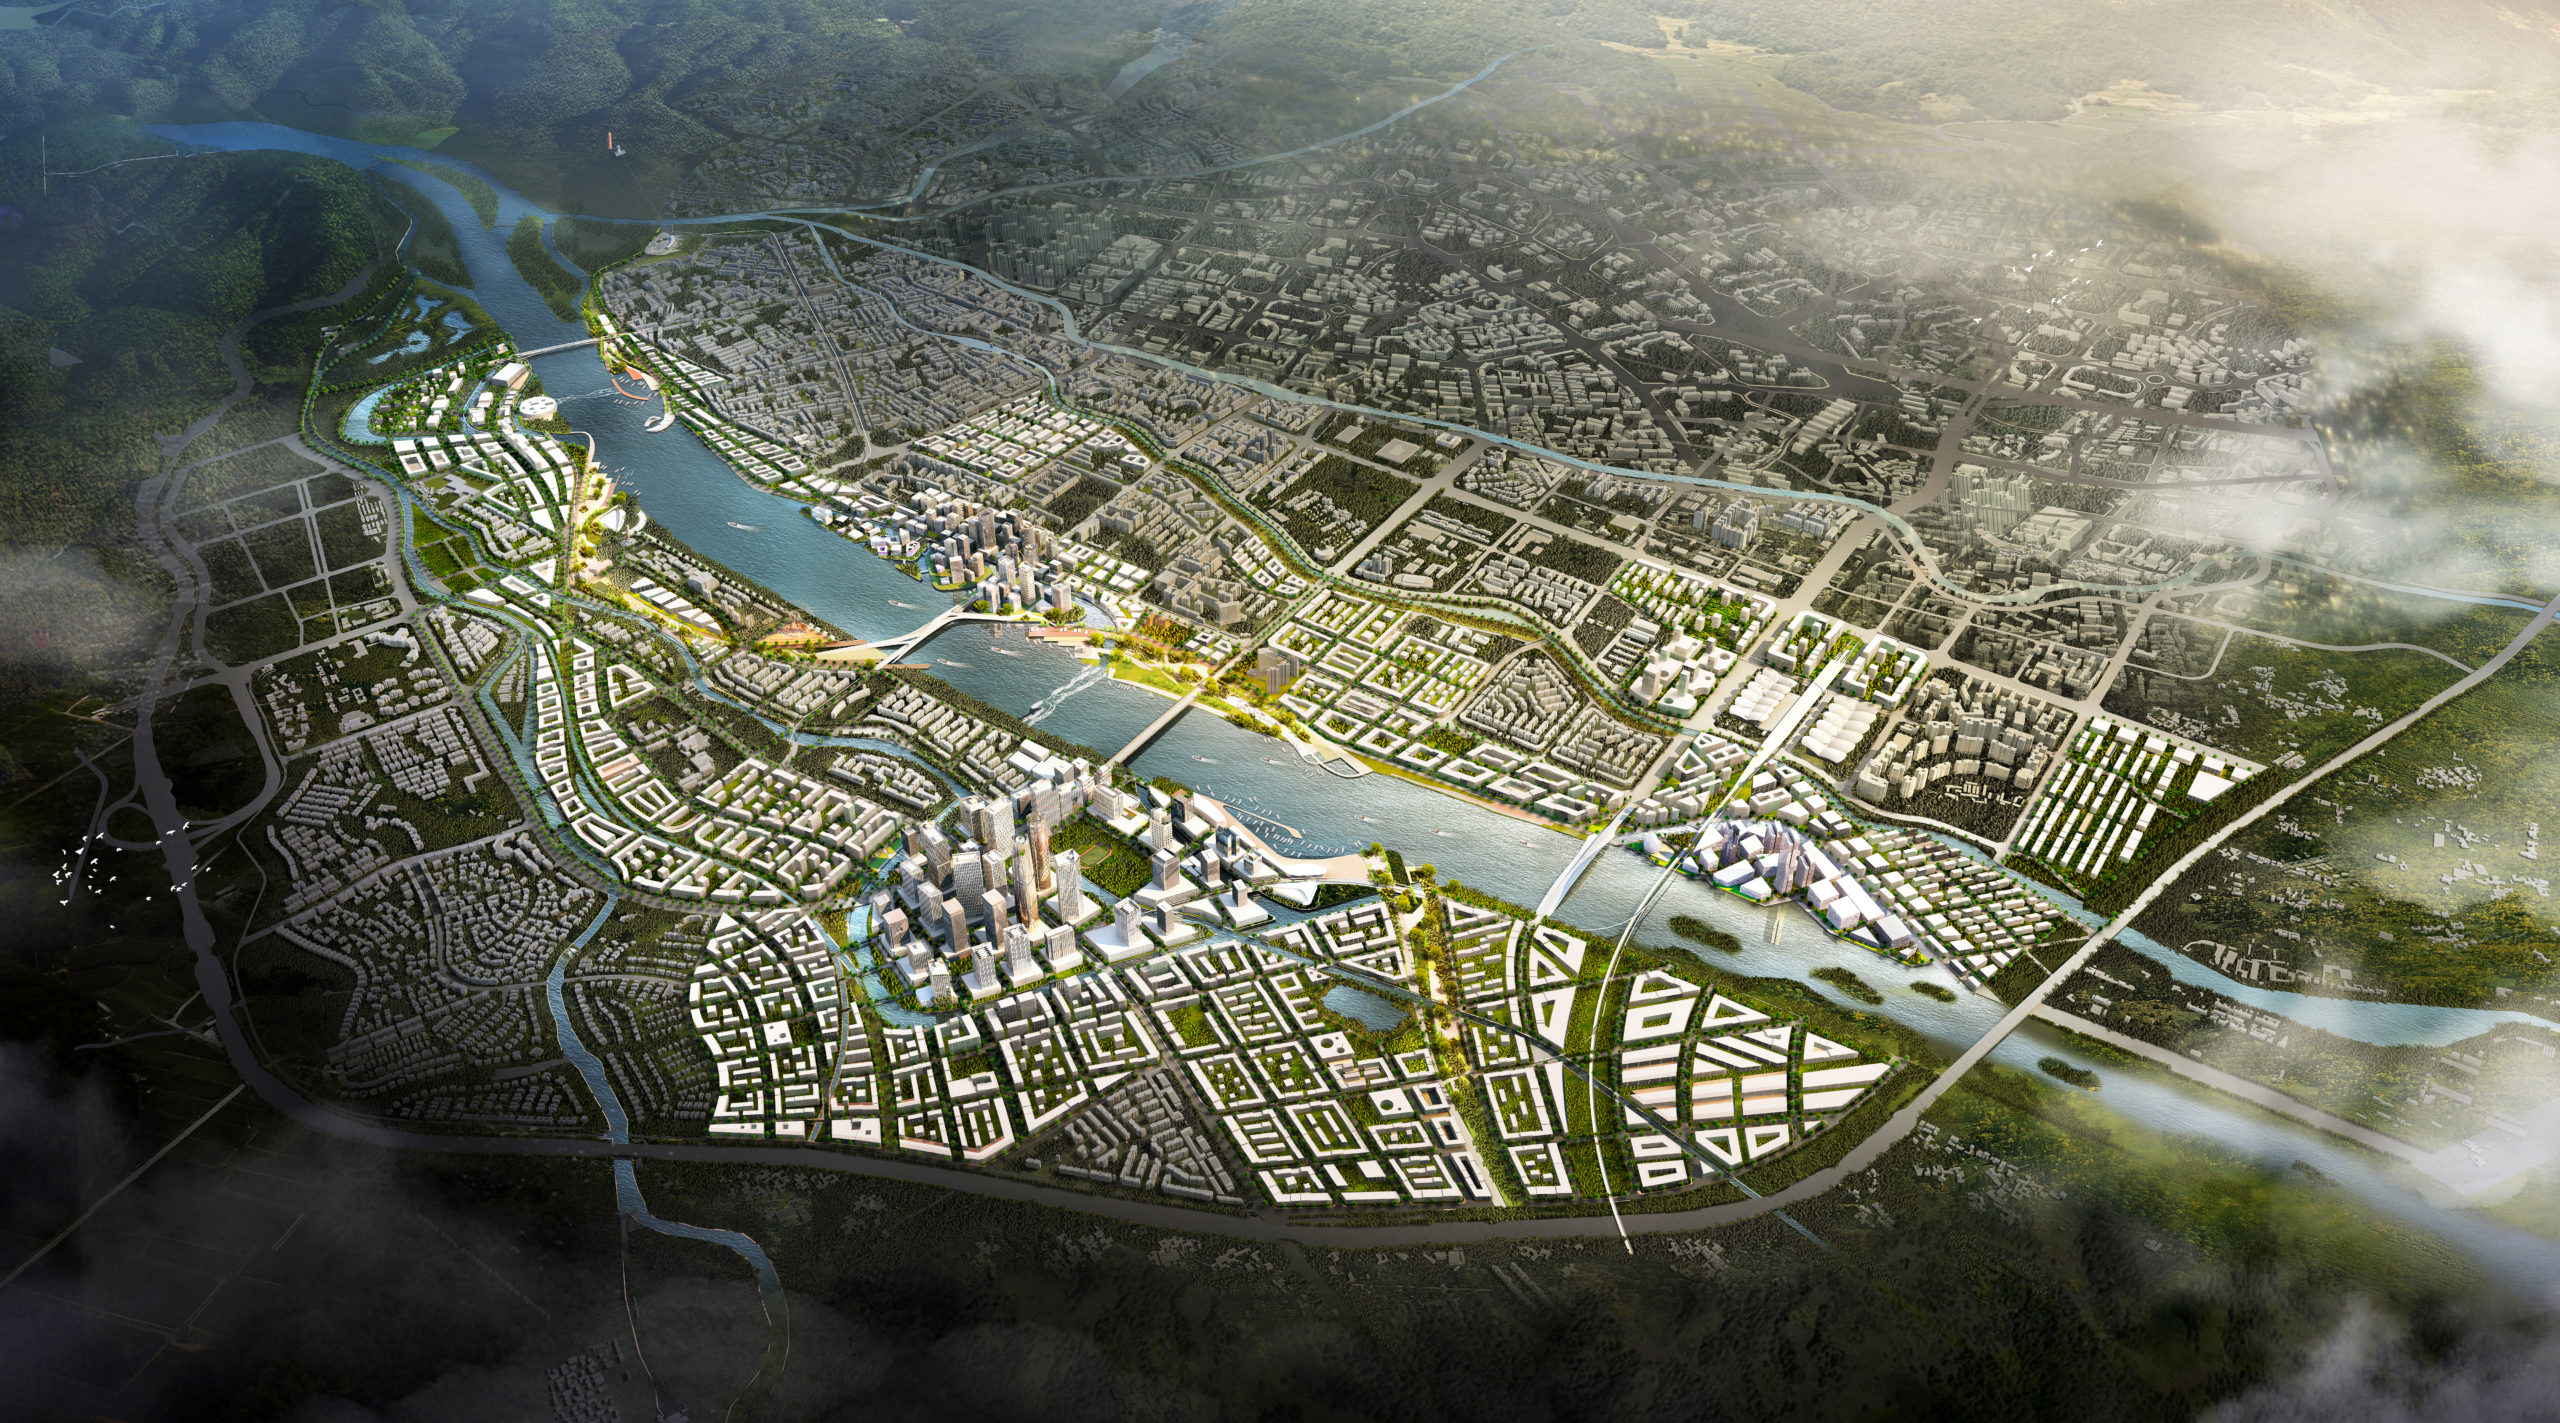 Shanshui city masterplan competition arial visualisation